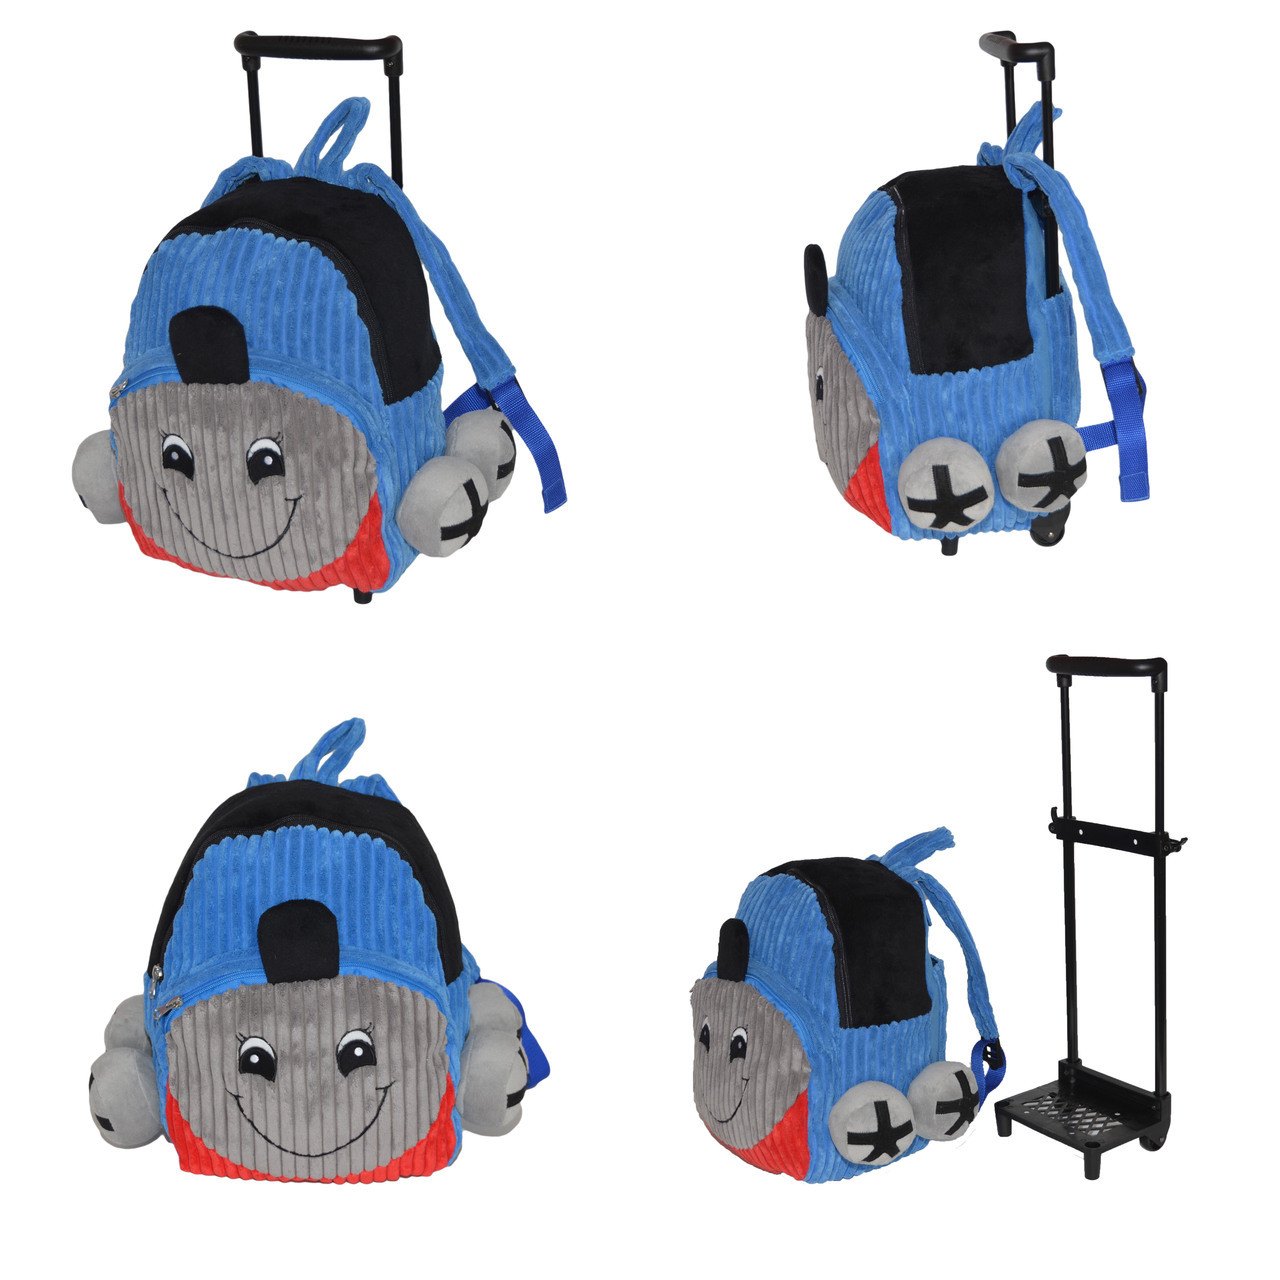 94c2474cfc62 ... Blue Train Kids Plush Rolling Carry-On Luggage Backpack with Removable  Telescopic Handle. Price   44.99. Image 1